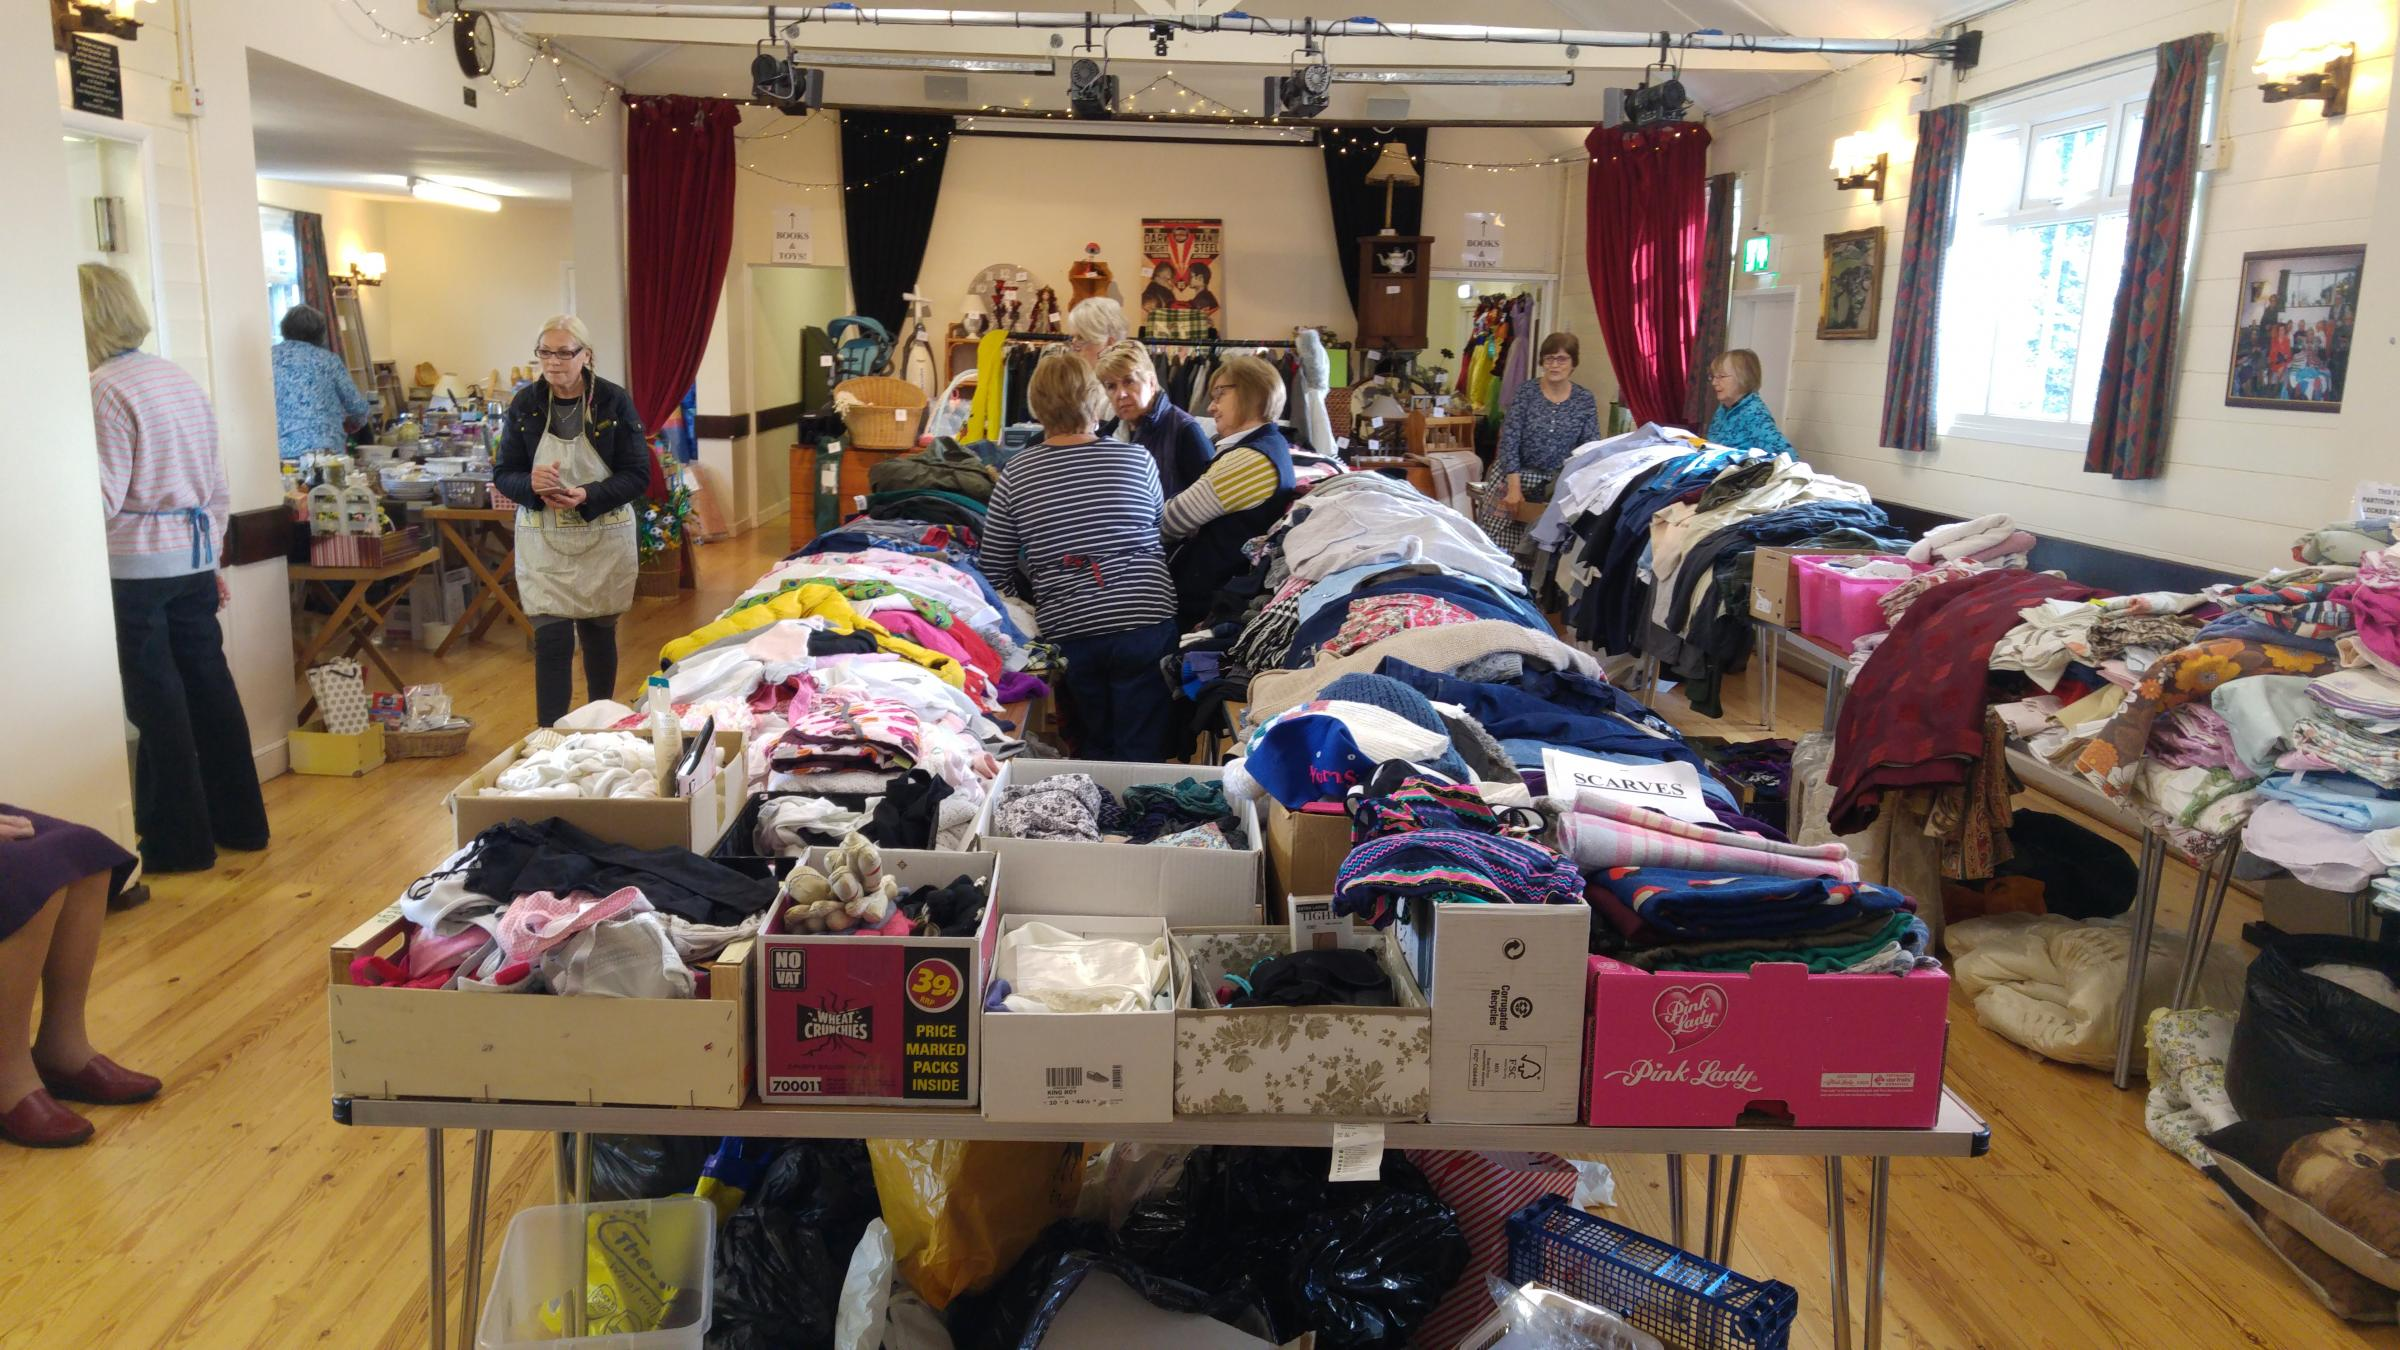 The Great Maplestead Jumble Sale